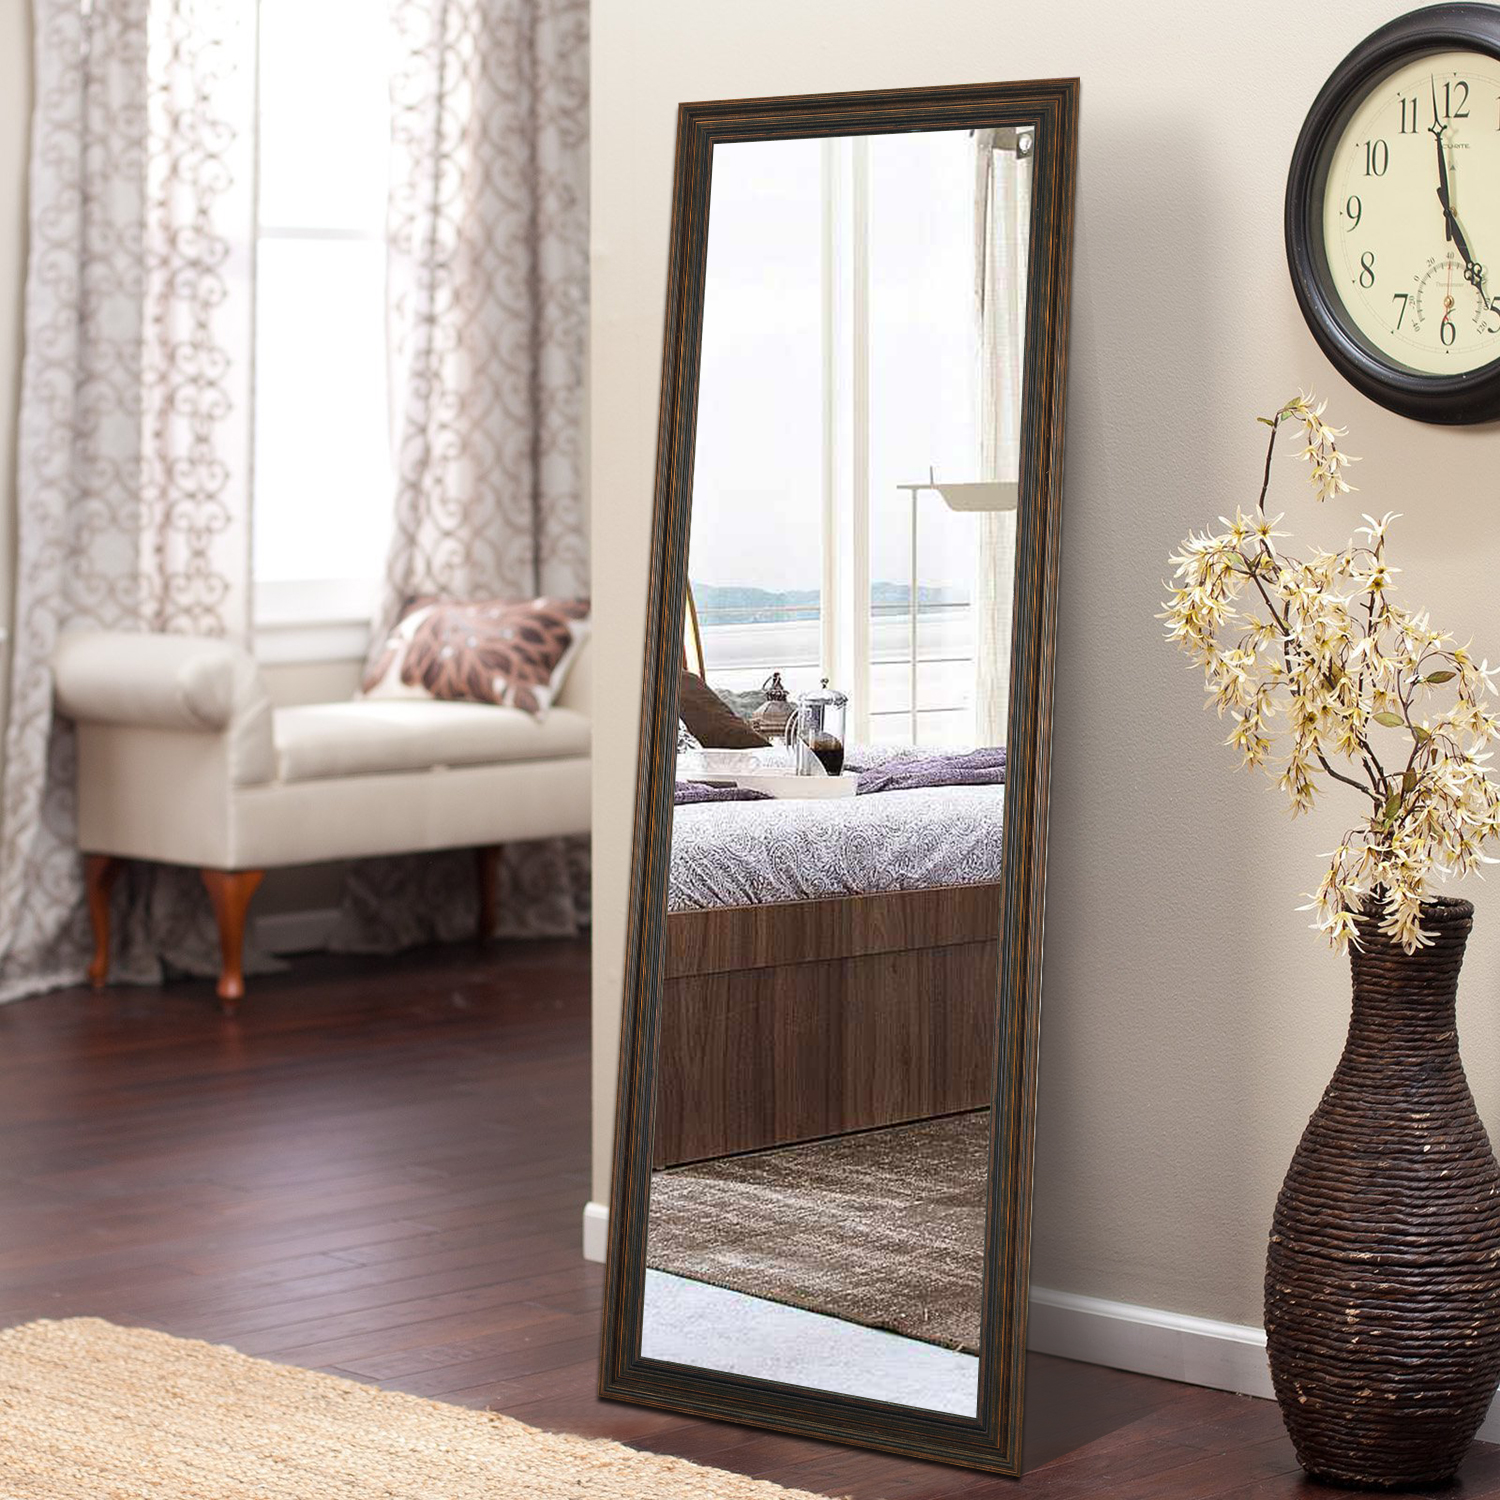 Full Length Mirror Floor Mirror With Standing Holder Wall Mounted Mirror Hanging Horizontally Vertically For Bedroom Living Room Entry Bronze 65 X 22 Walmart Com Walmart Com